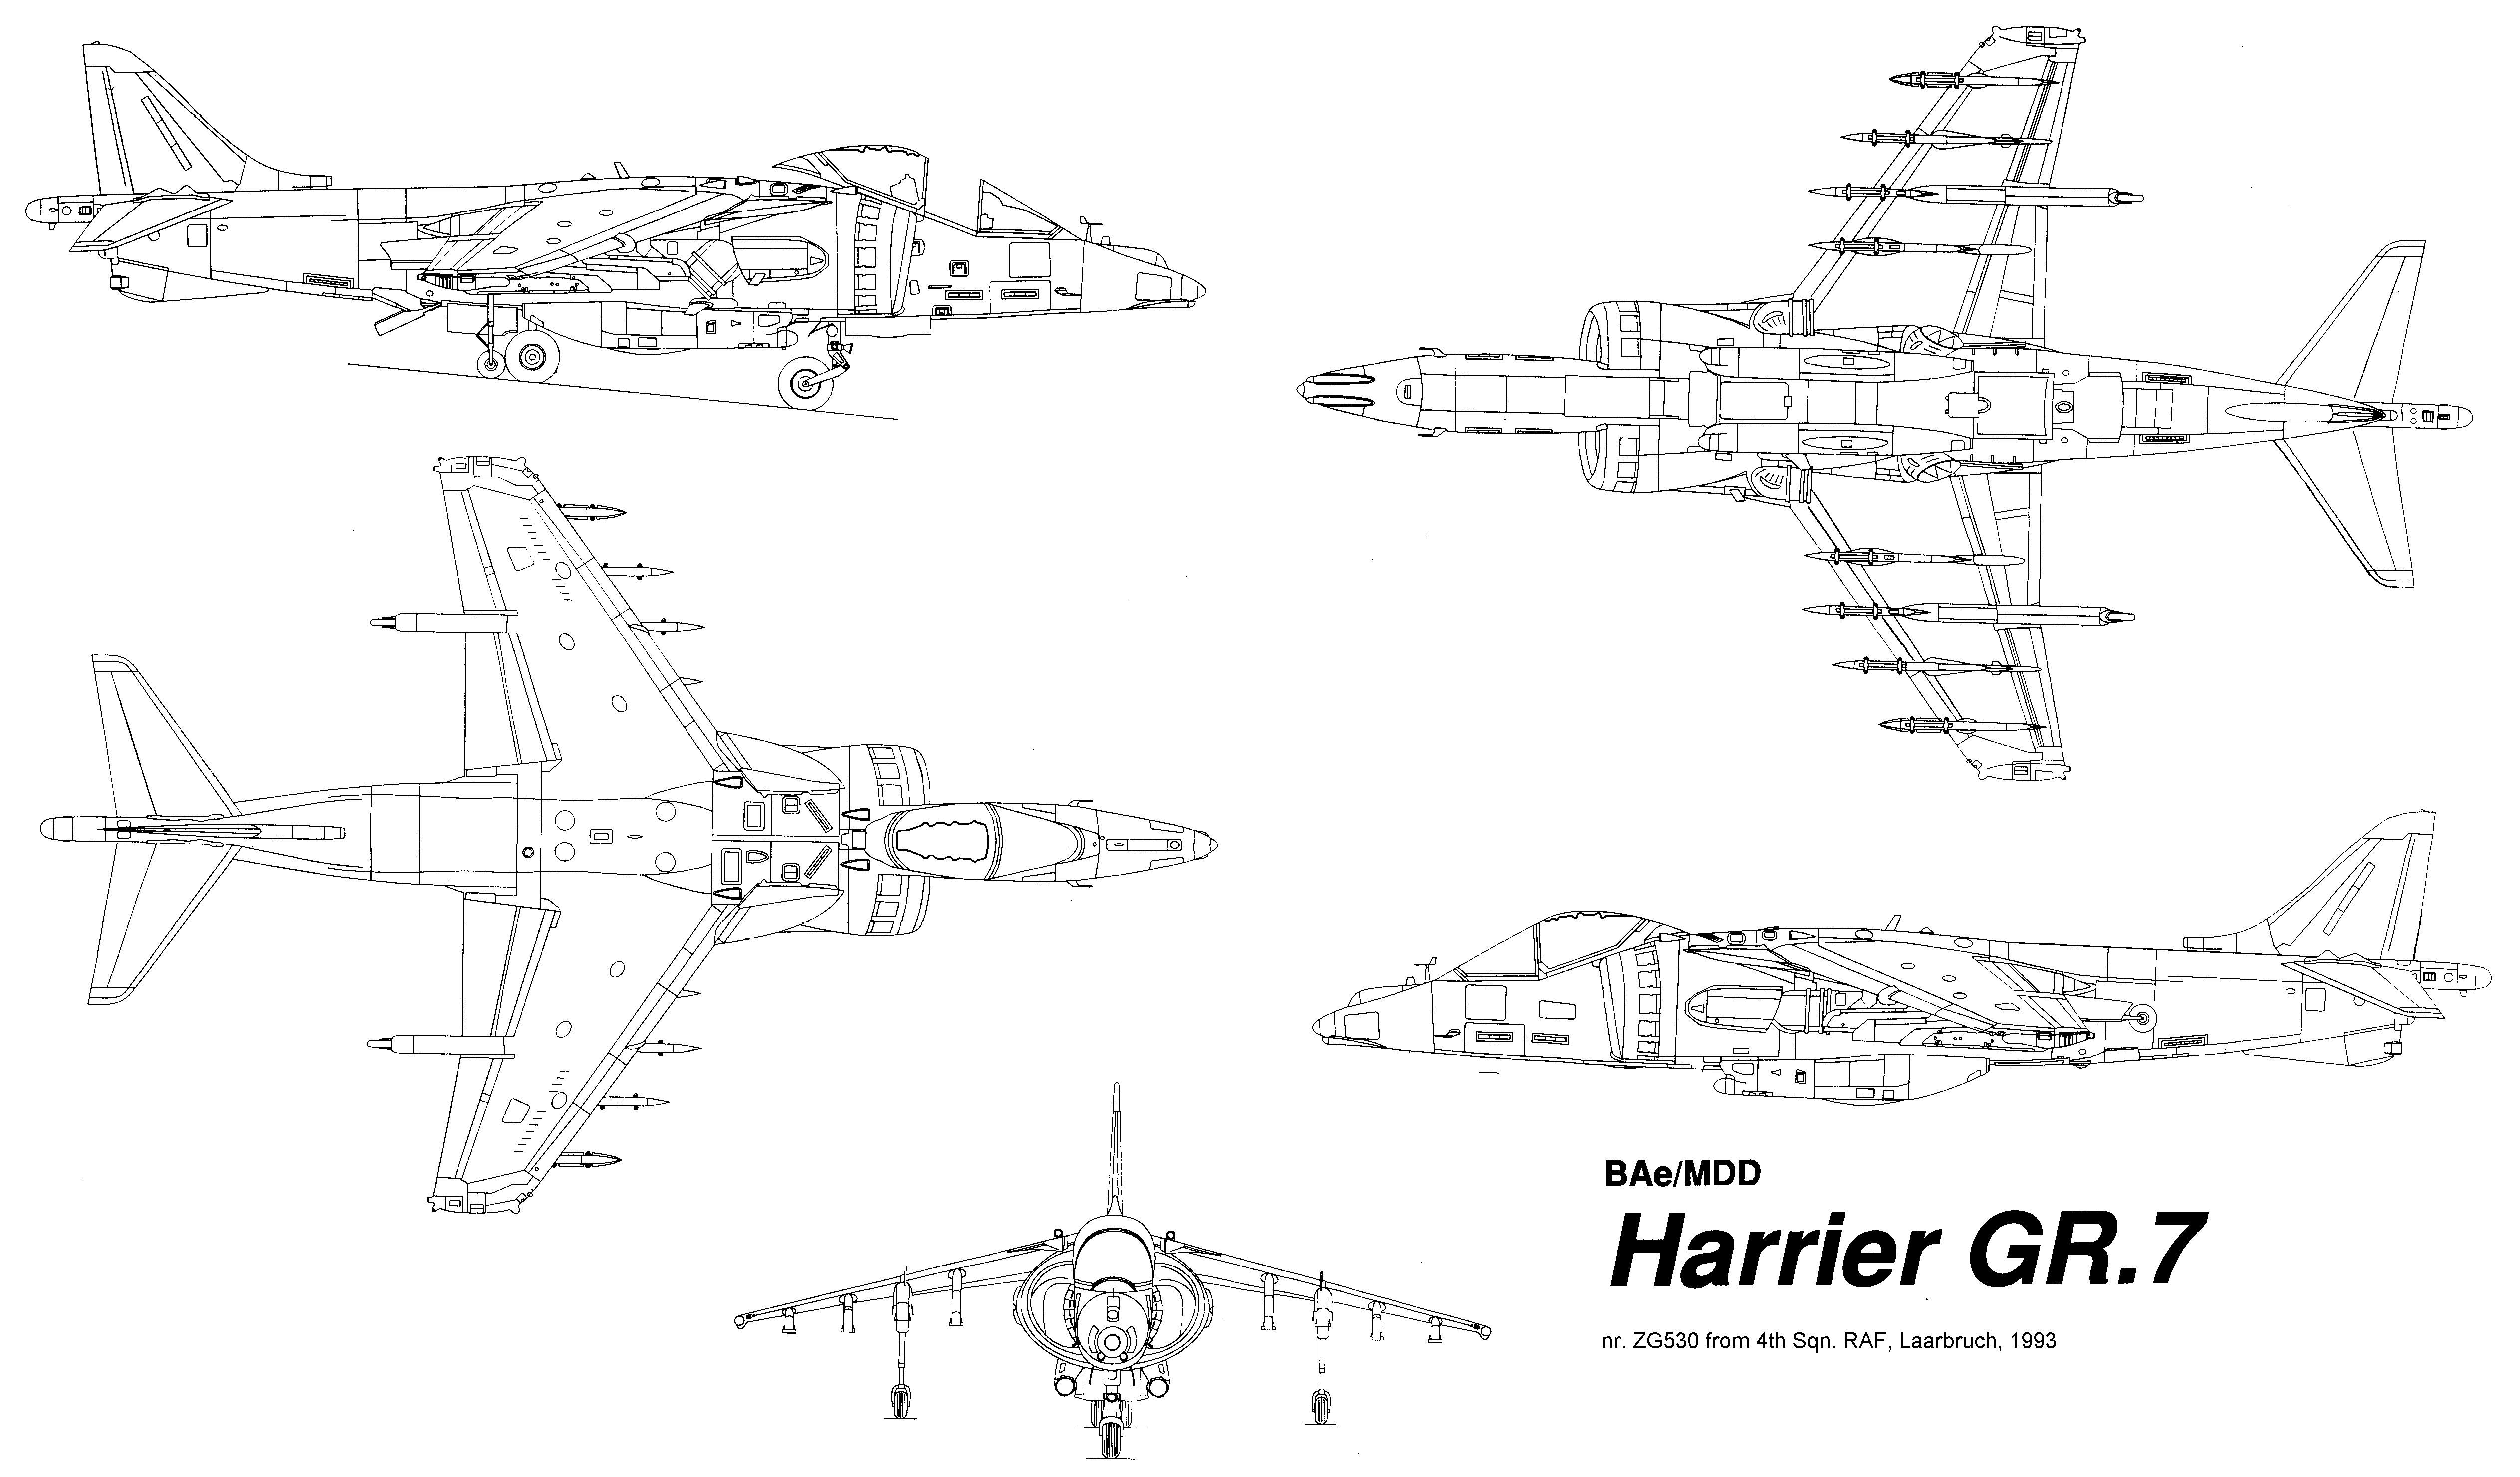 medium resolution of harrier gr 7 blueprint